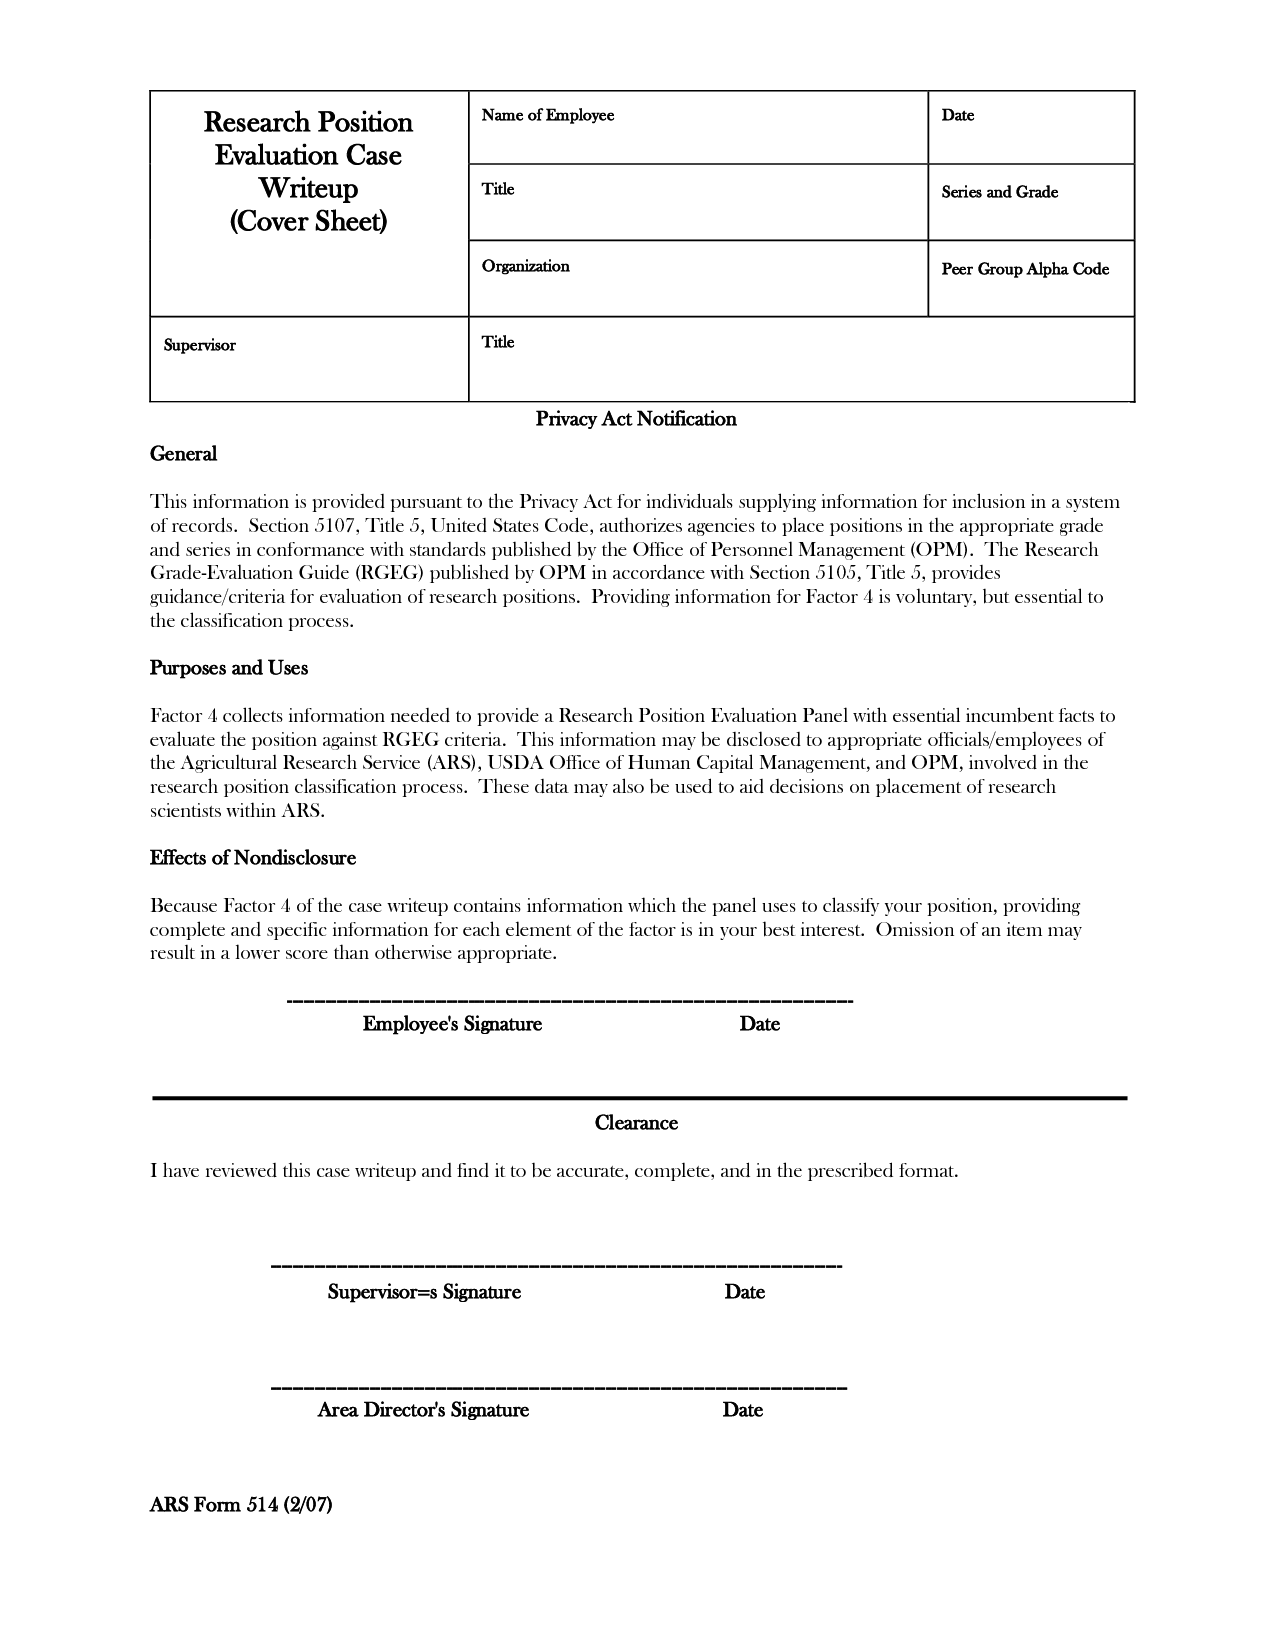 emloyment write up employee write up form download Brian Harrell